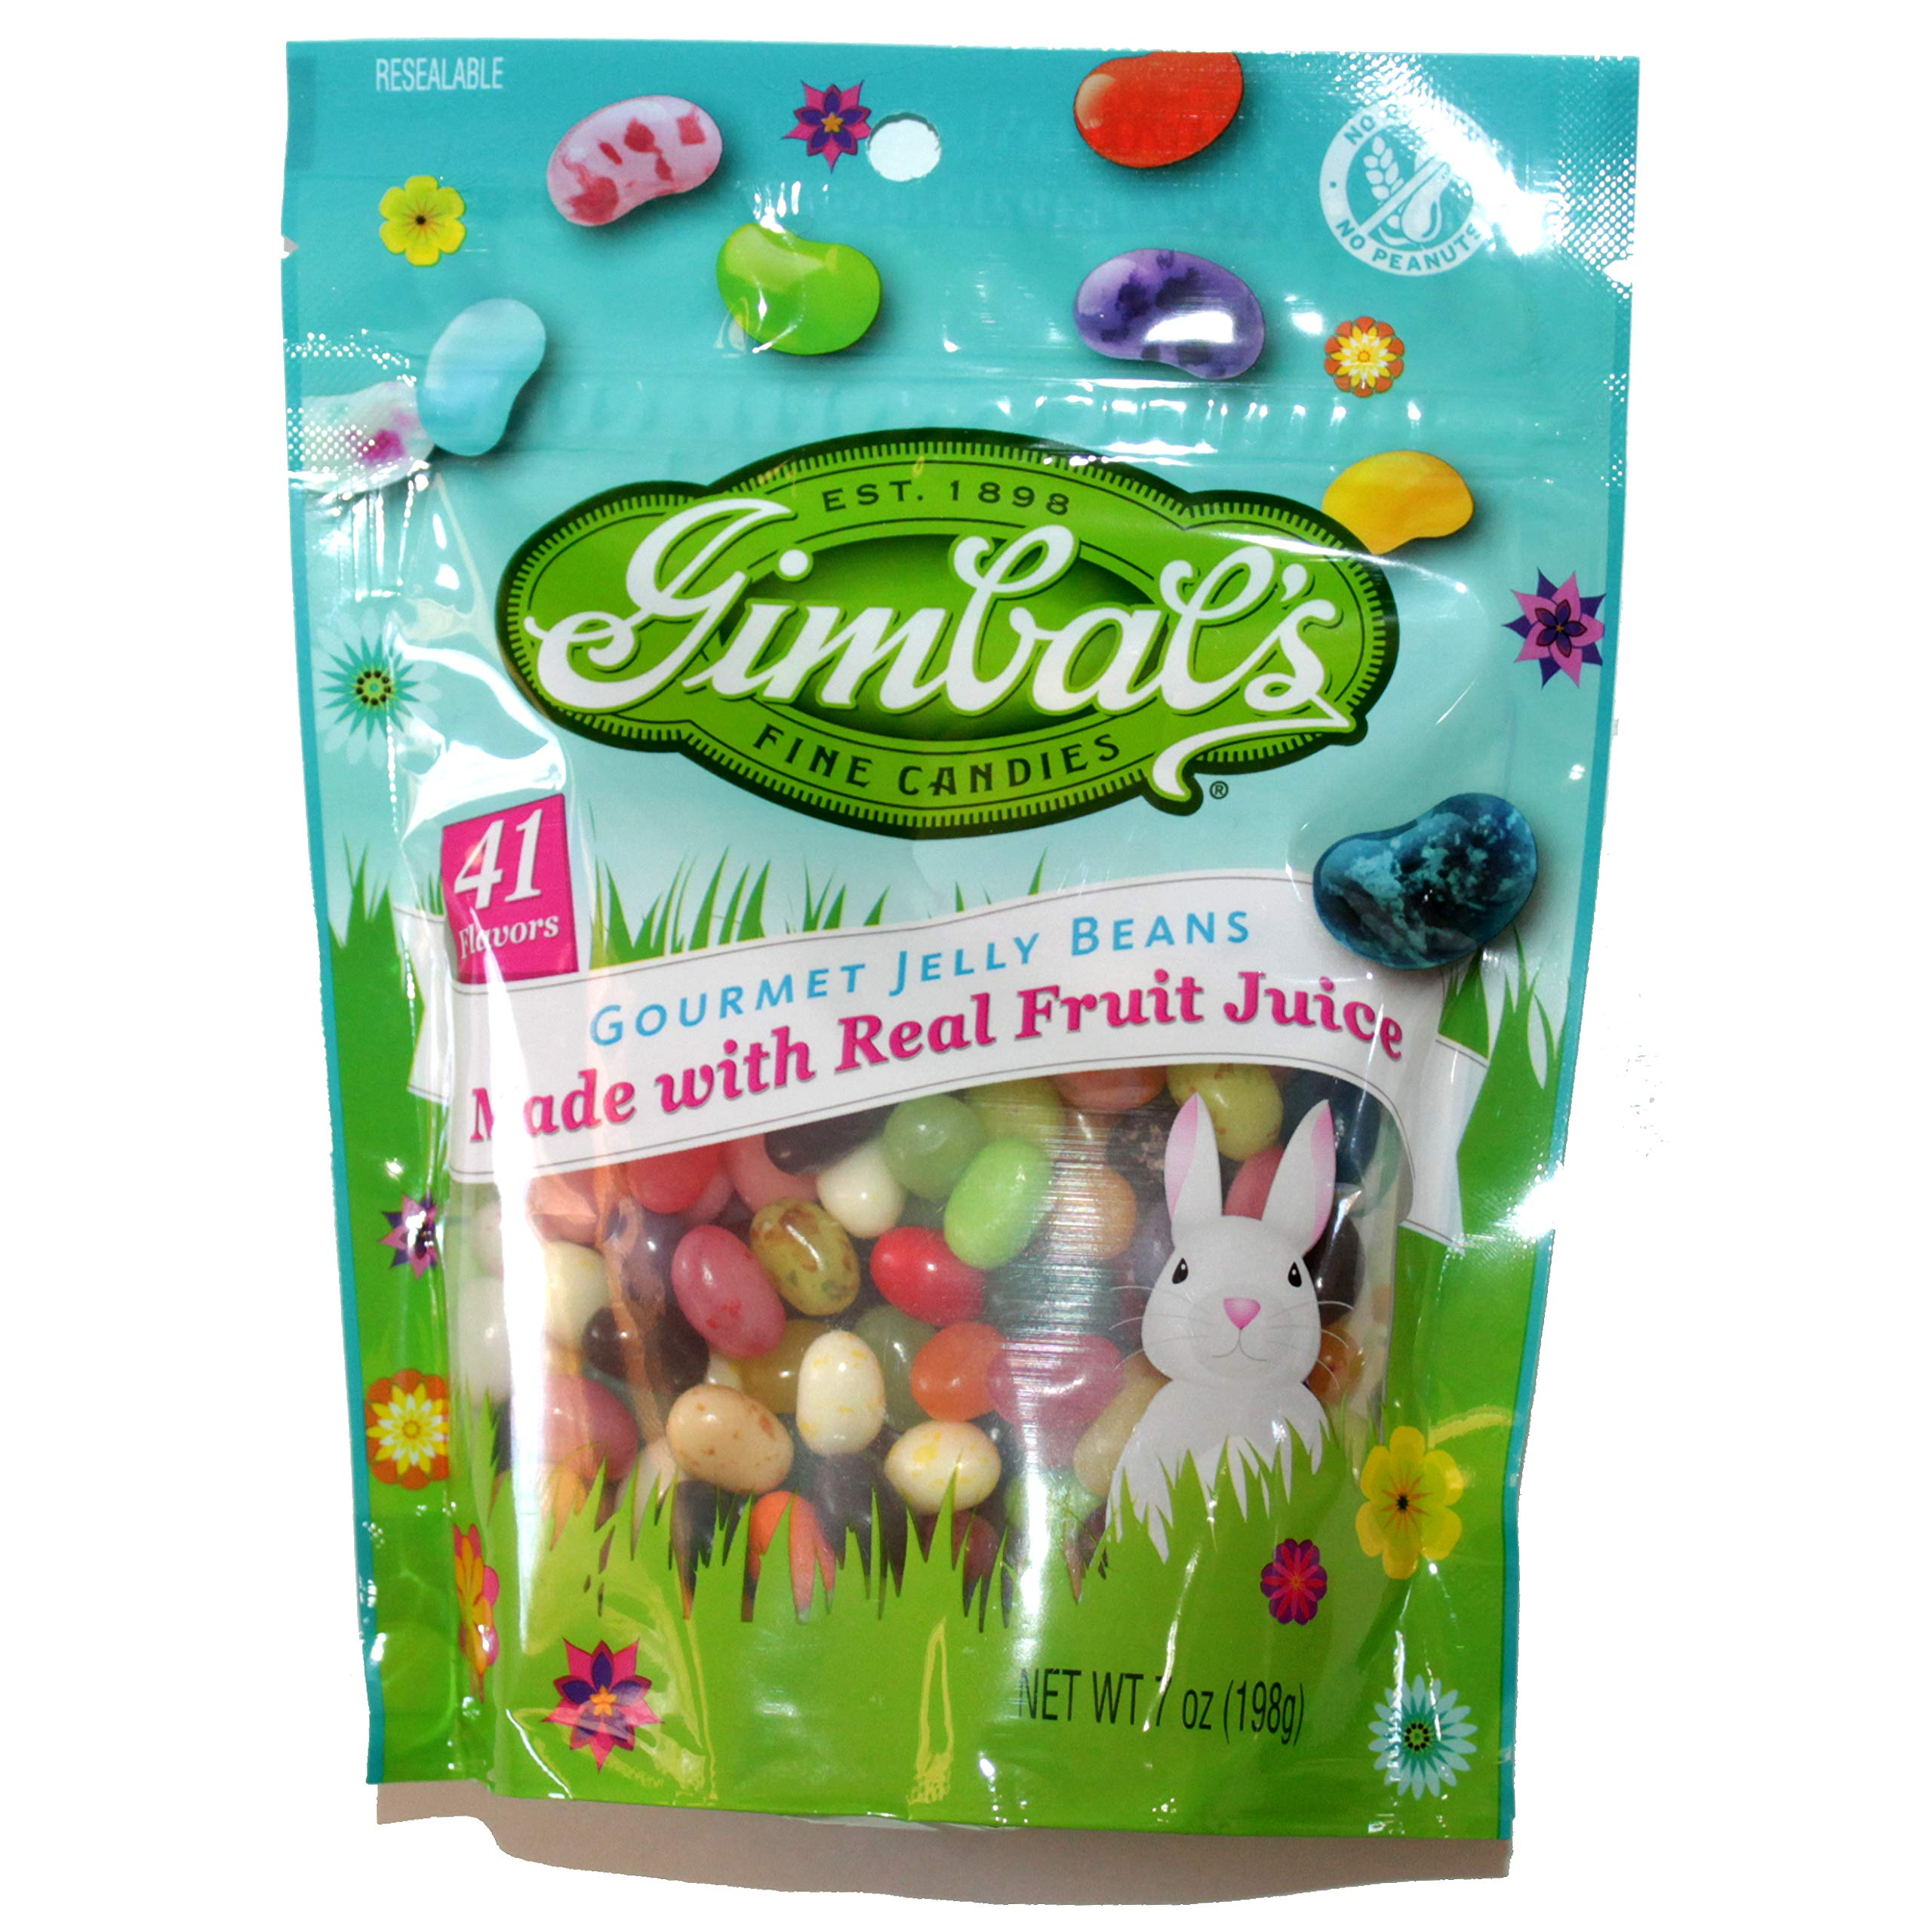 Gimbal's (1) 7 oz Bag Gourmet Jelly Beans Easter Candy 41 Flavors Made With Real Fruit Juice No Gluten No Peanuts 7 oz